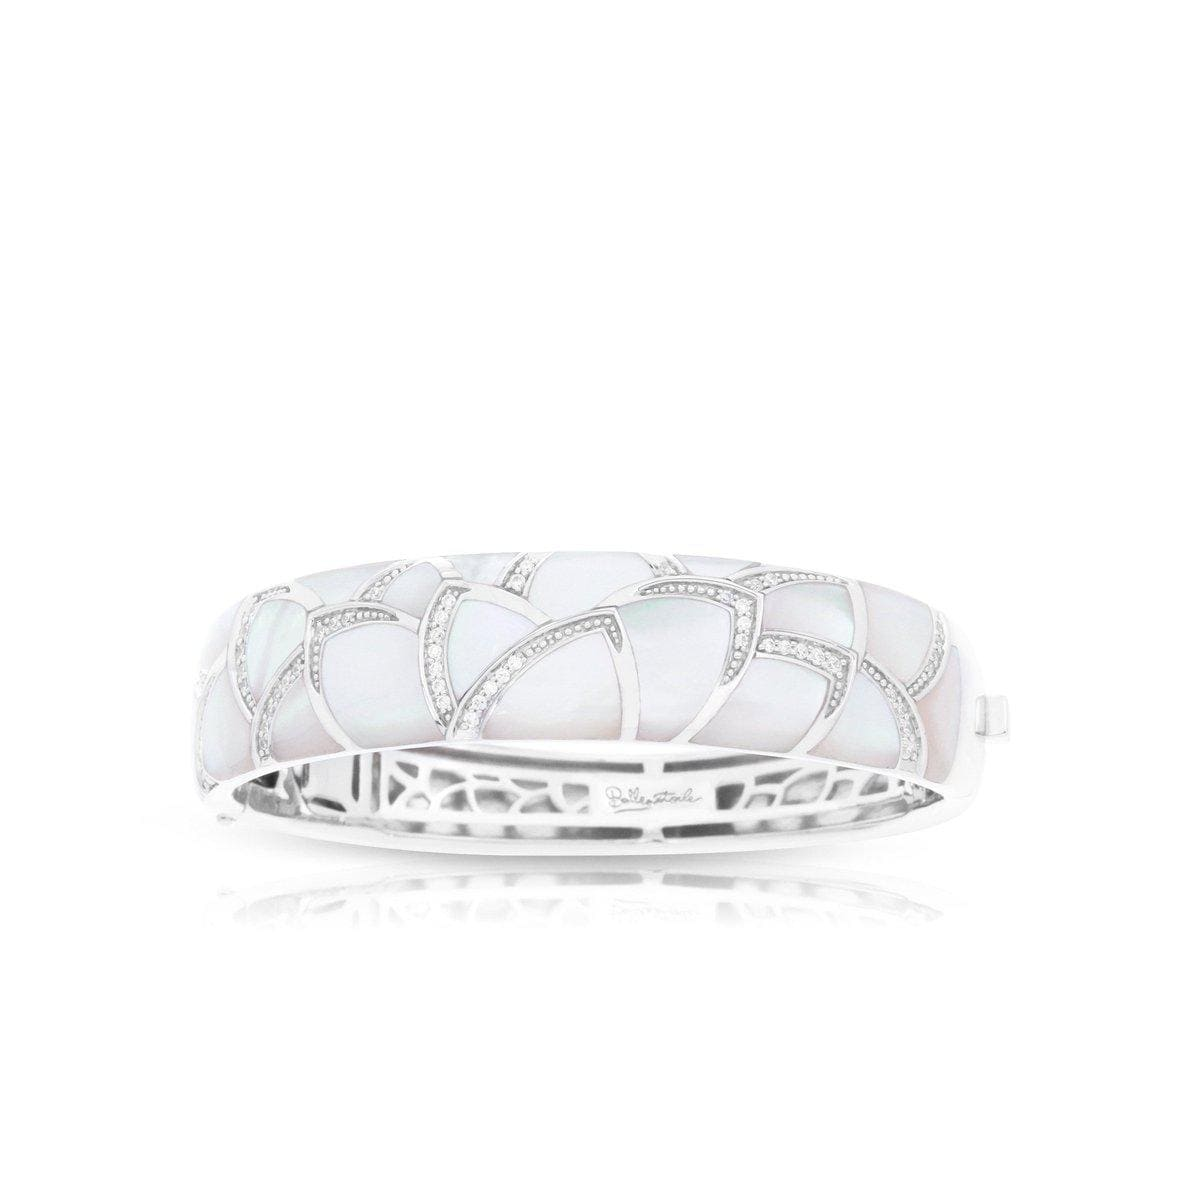 Sirena White Mother-of-Pearl Bangle-Belle Etoile-Renee Taylor Gallery